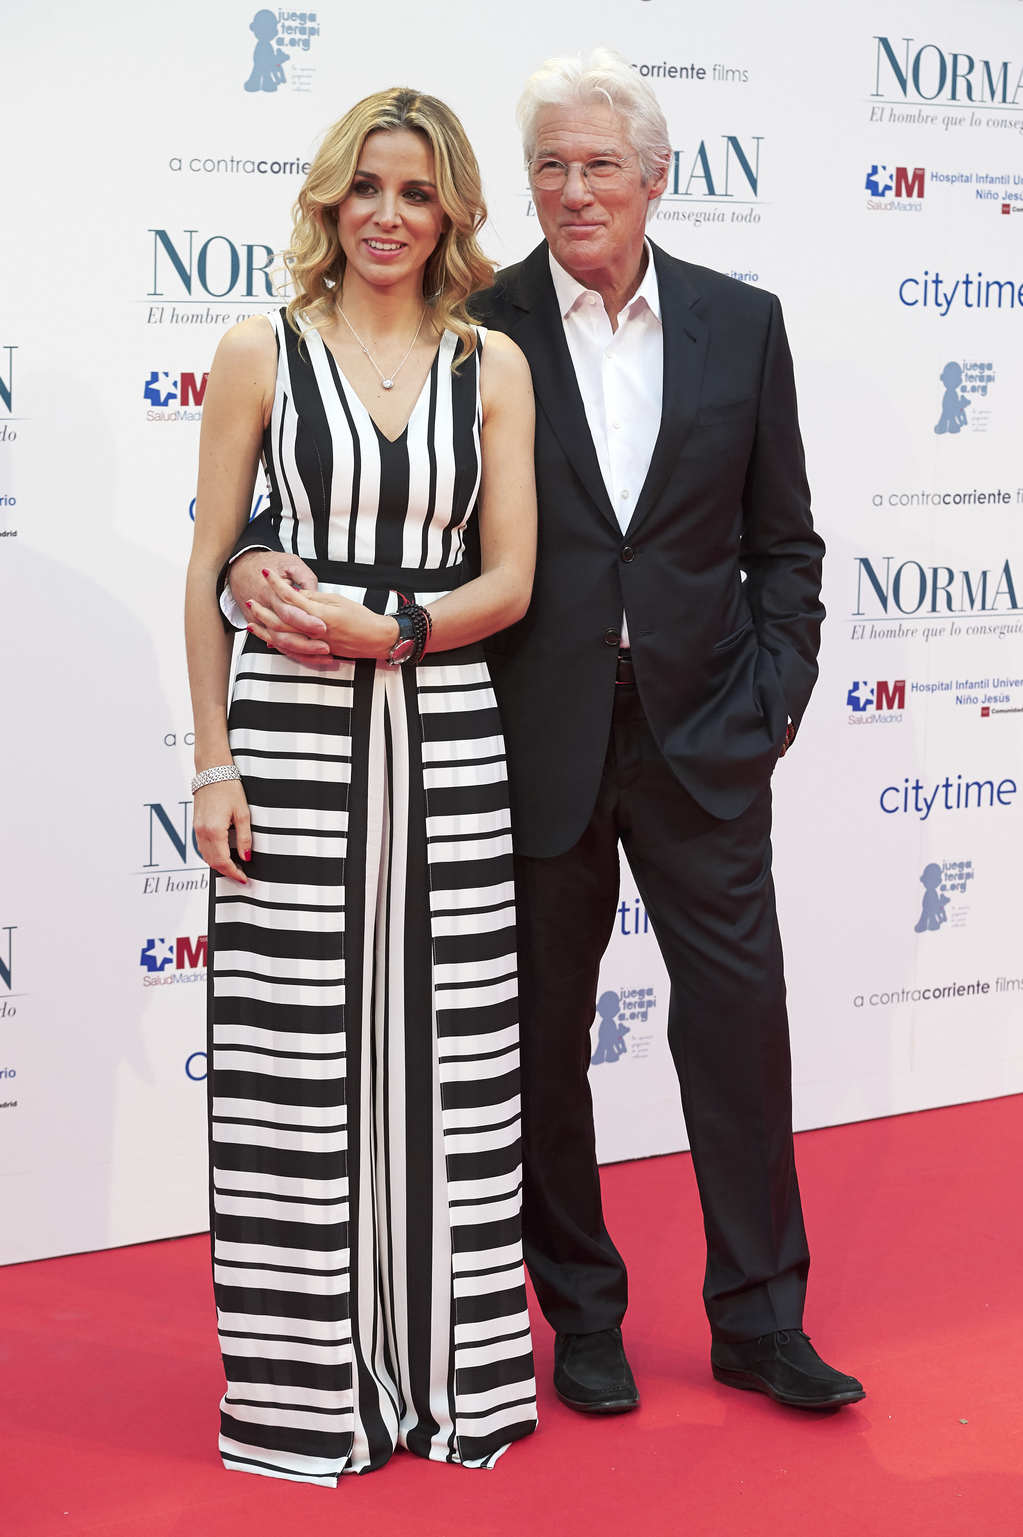 Alejandra Silva és Richard Gere (Fotó: Getty Images)